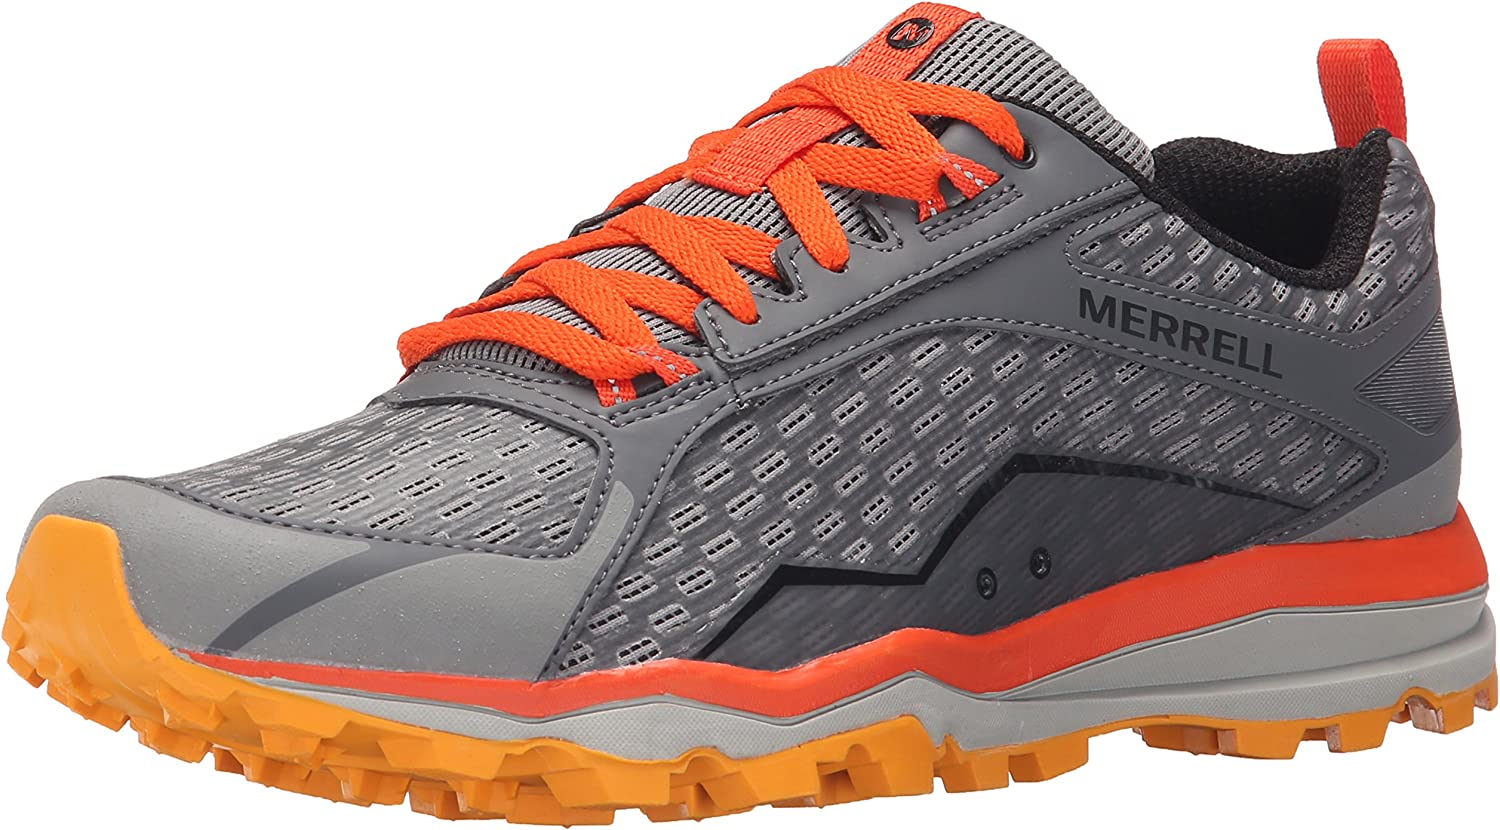 Merrell Men's All Out Crush Trail Running shoes